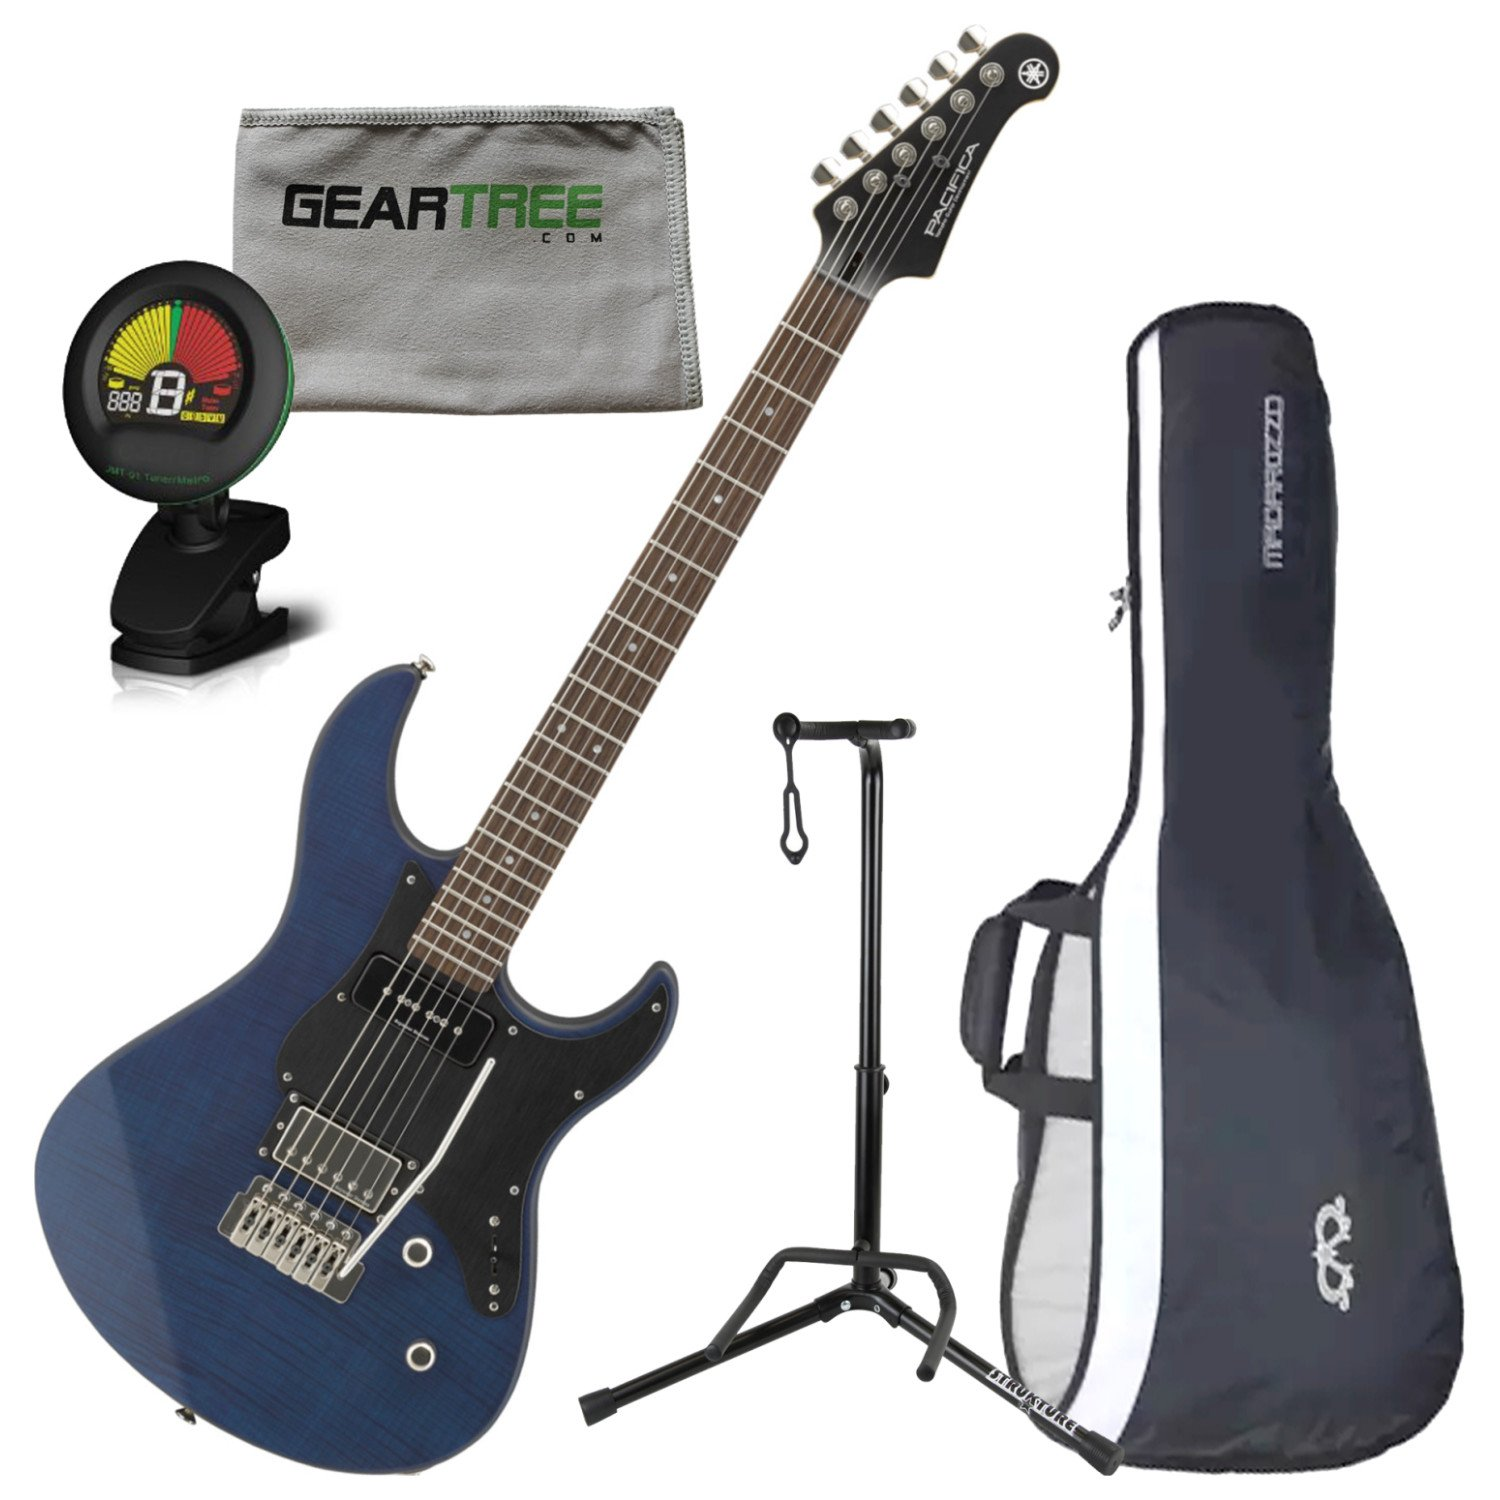 Amazon.com: Yamaha PAC611VFMX MRLB Limited Edition Electric Guitar (Matte Trans Blue) w/Bag: Musical Instruments